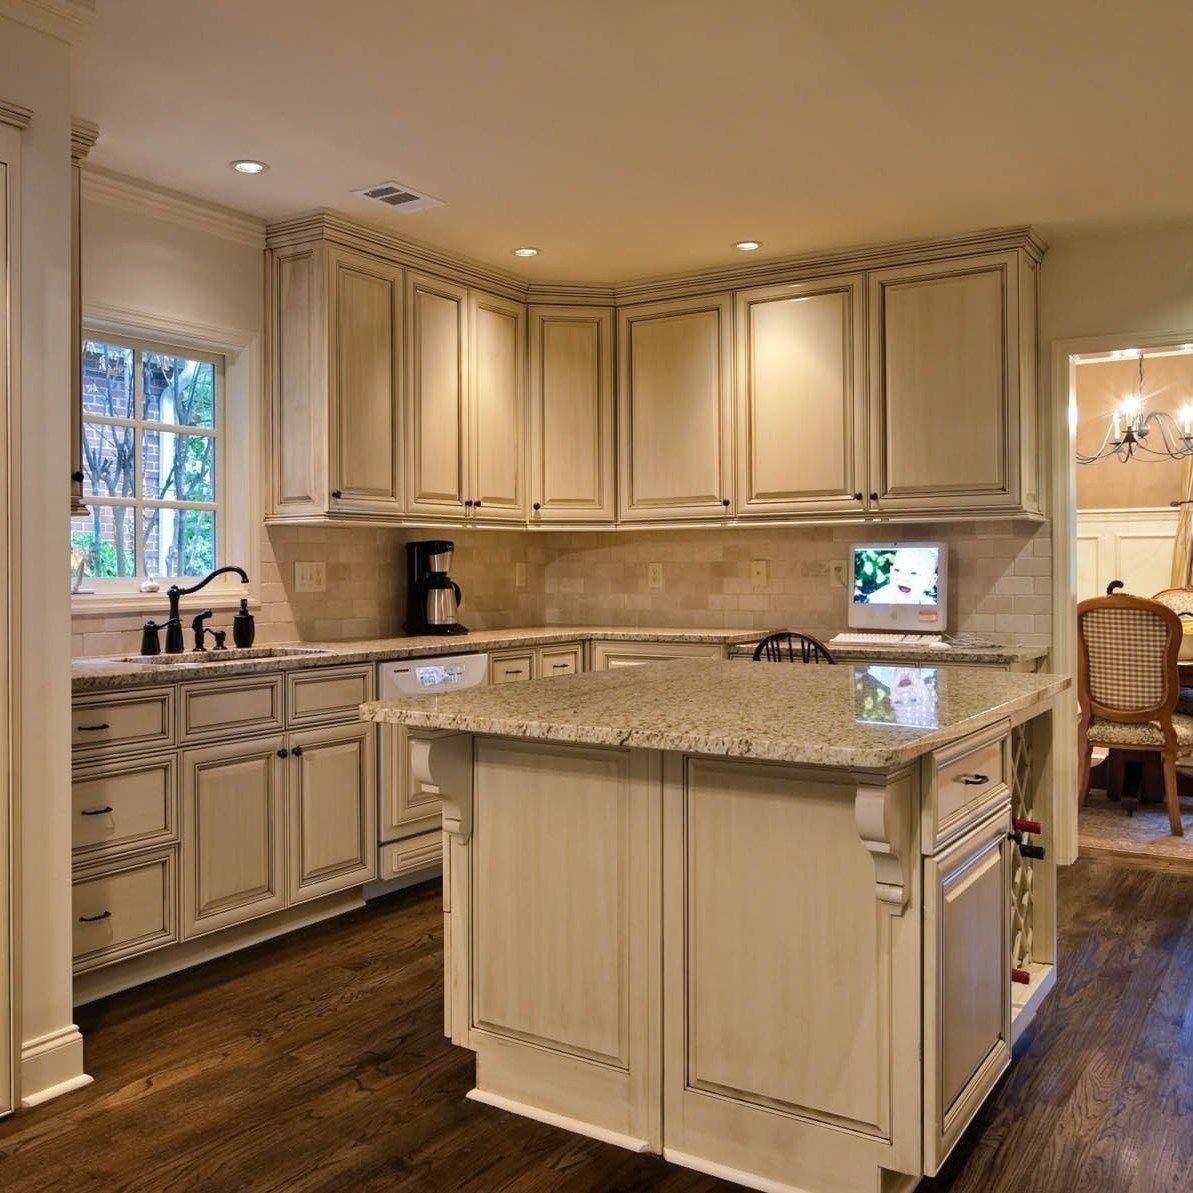 Cool Antique Kitchen Cabinets Antique White Kitchen Cabinets Antique White Kitchen Refacing Kitchen Cabinets